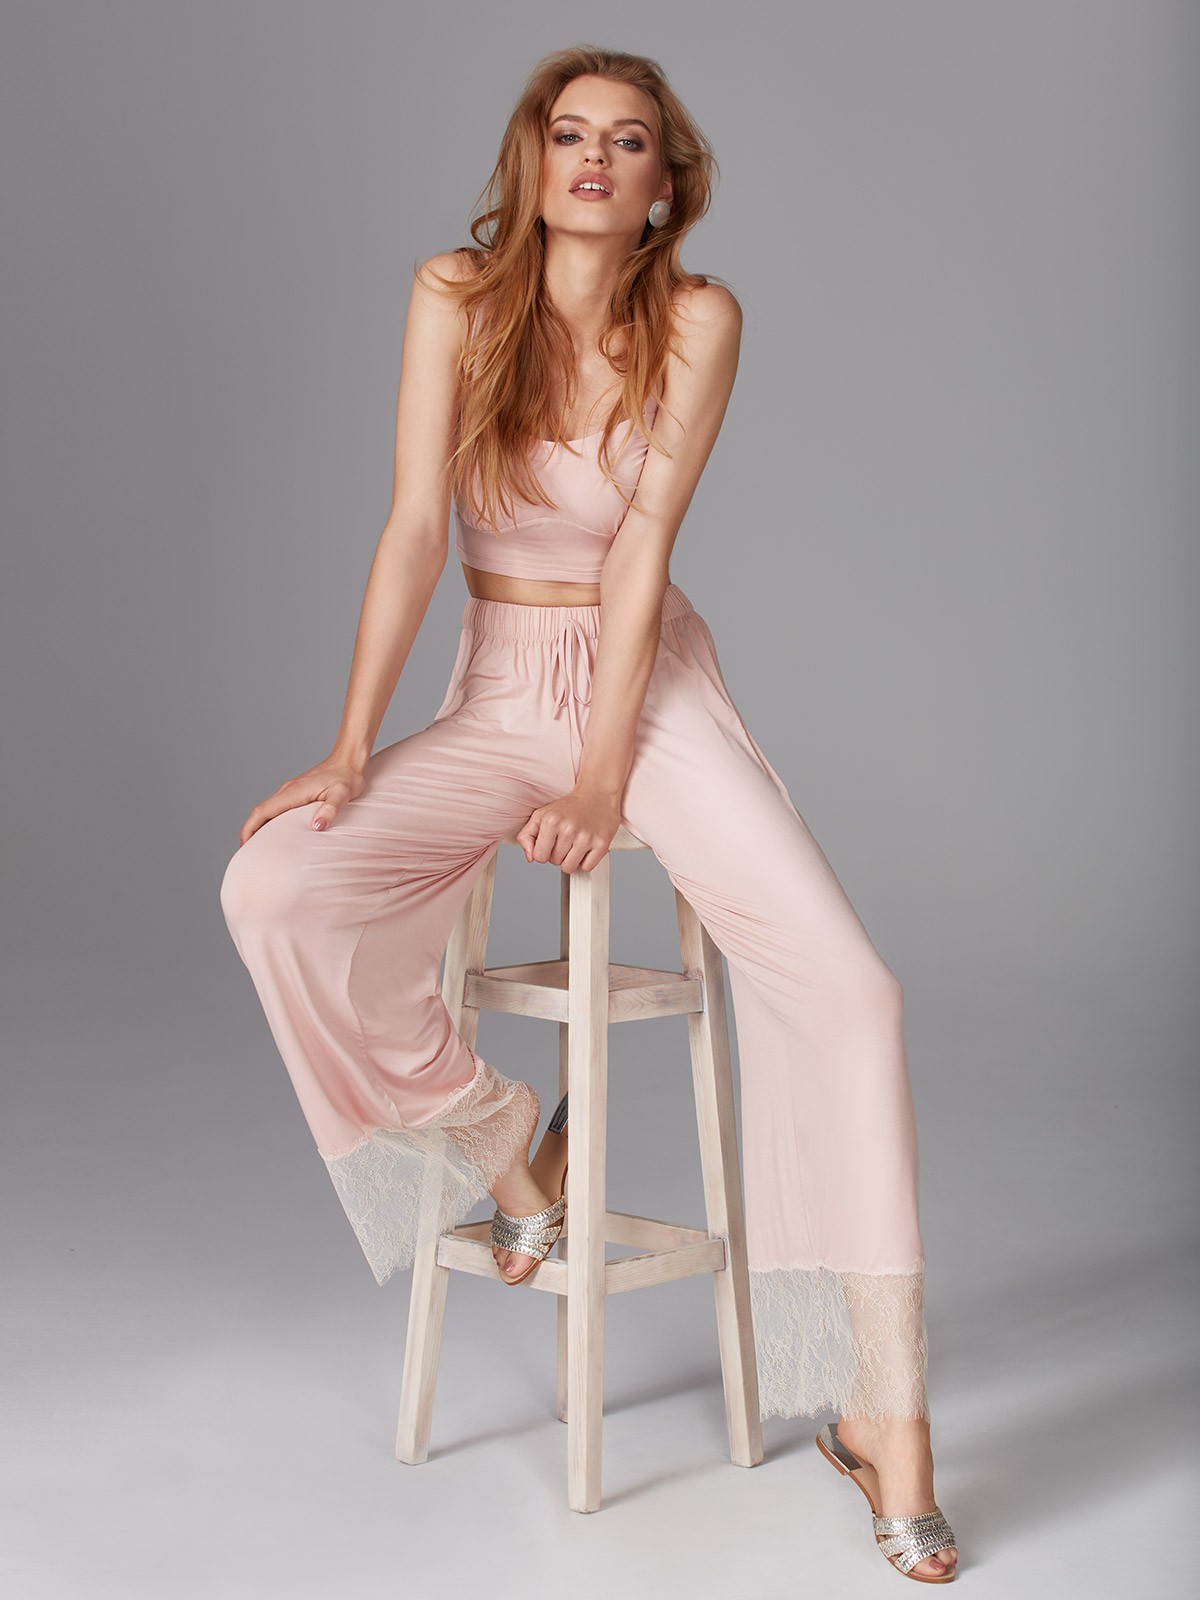 Youth OZ001 Top <br />01 Ivory, 02 Black, 64 Dusty Pink<br />Pretty Things OZ002 Pantalone<br />01 Ivory, 02 Black, 64 Dusty Pink